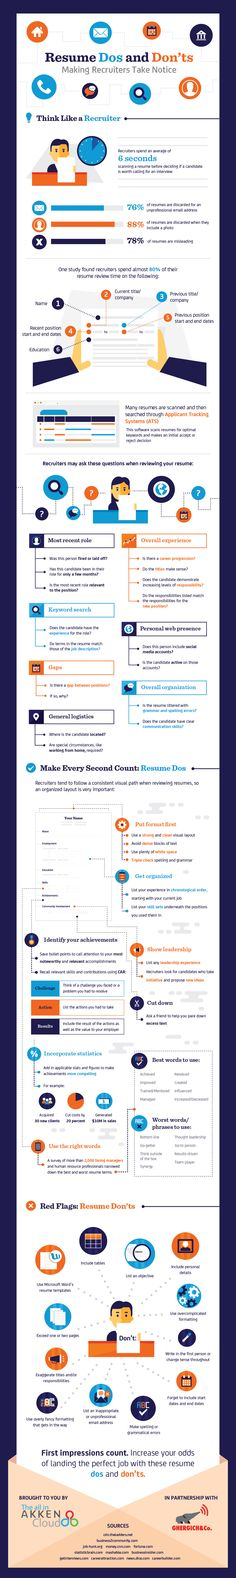 Resume Dos and Donu0027ts Making Recruiters Take Notice (Infographic) - resume dos and donts